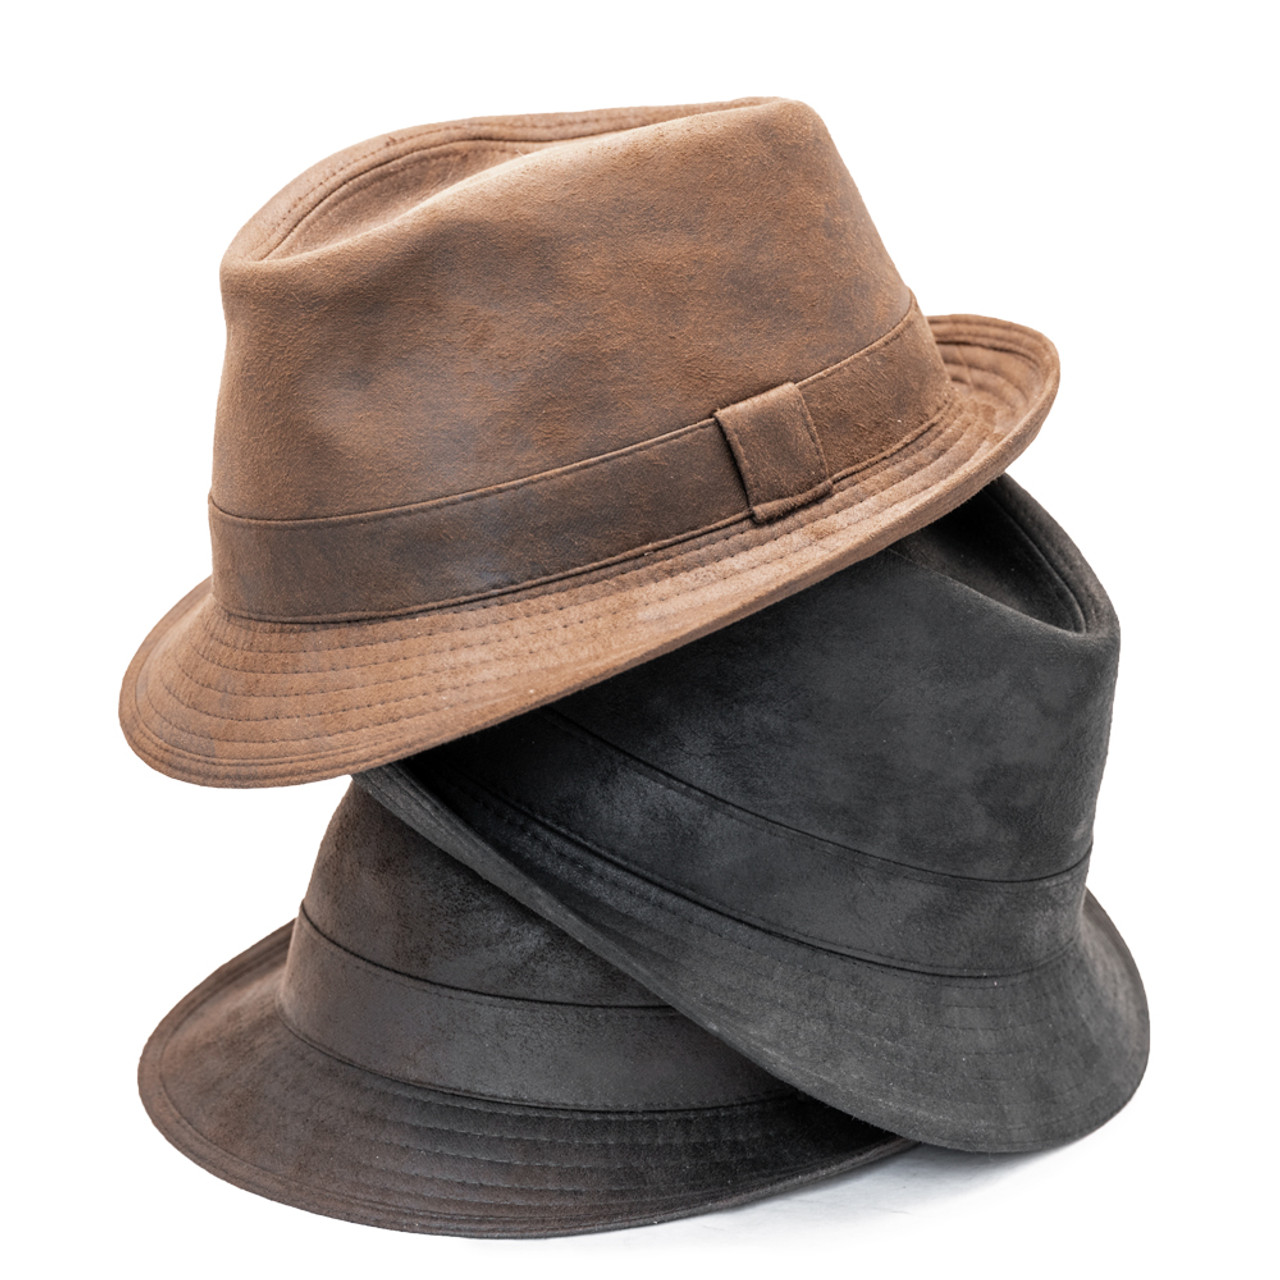 8b5ad03af594c3 Previous. Henschel - Faux Distressed Leather Fedora ...